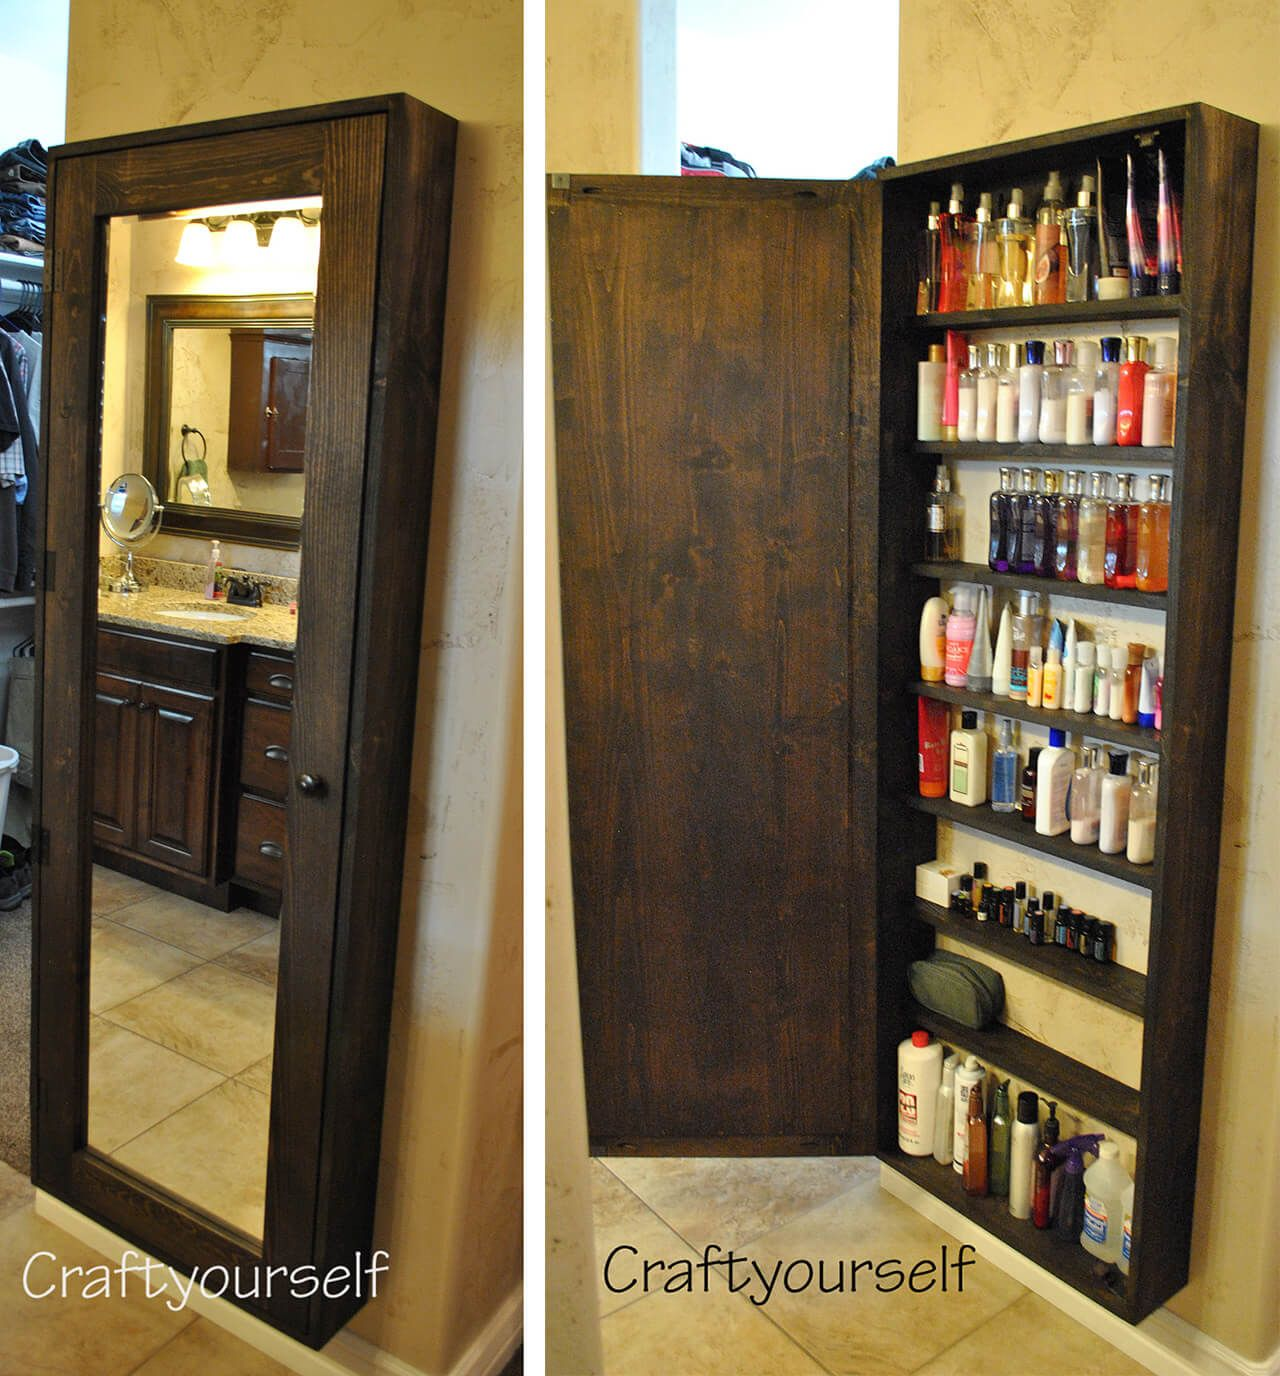 35 Genius Storage Ideas For Small Spaces To Make Your Home Feel